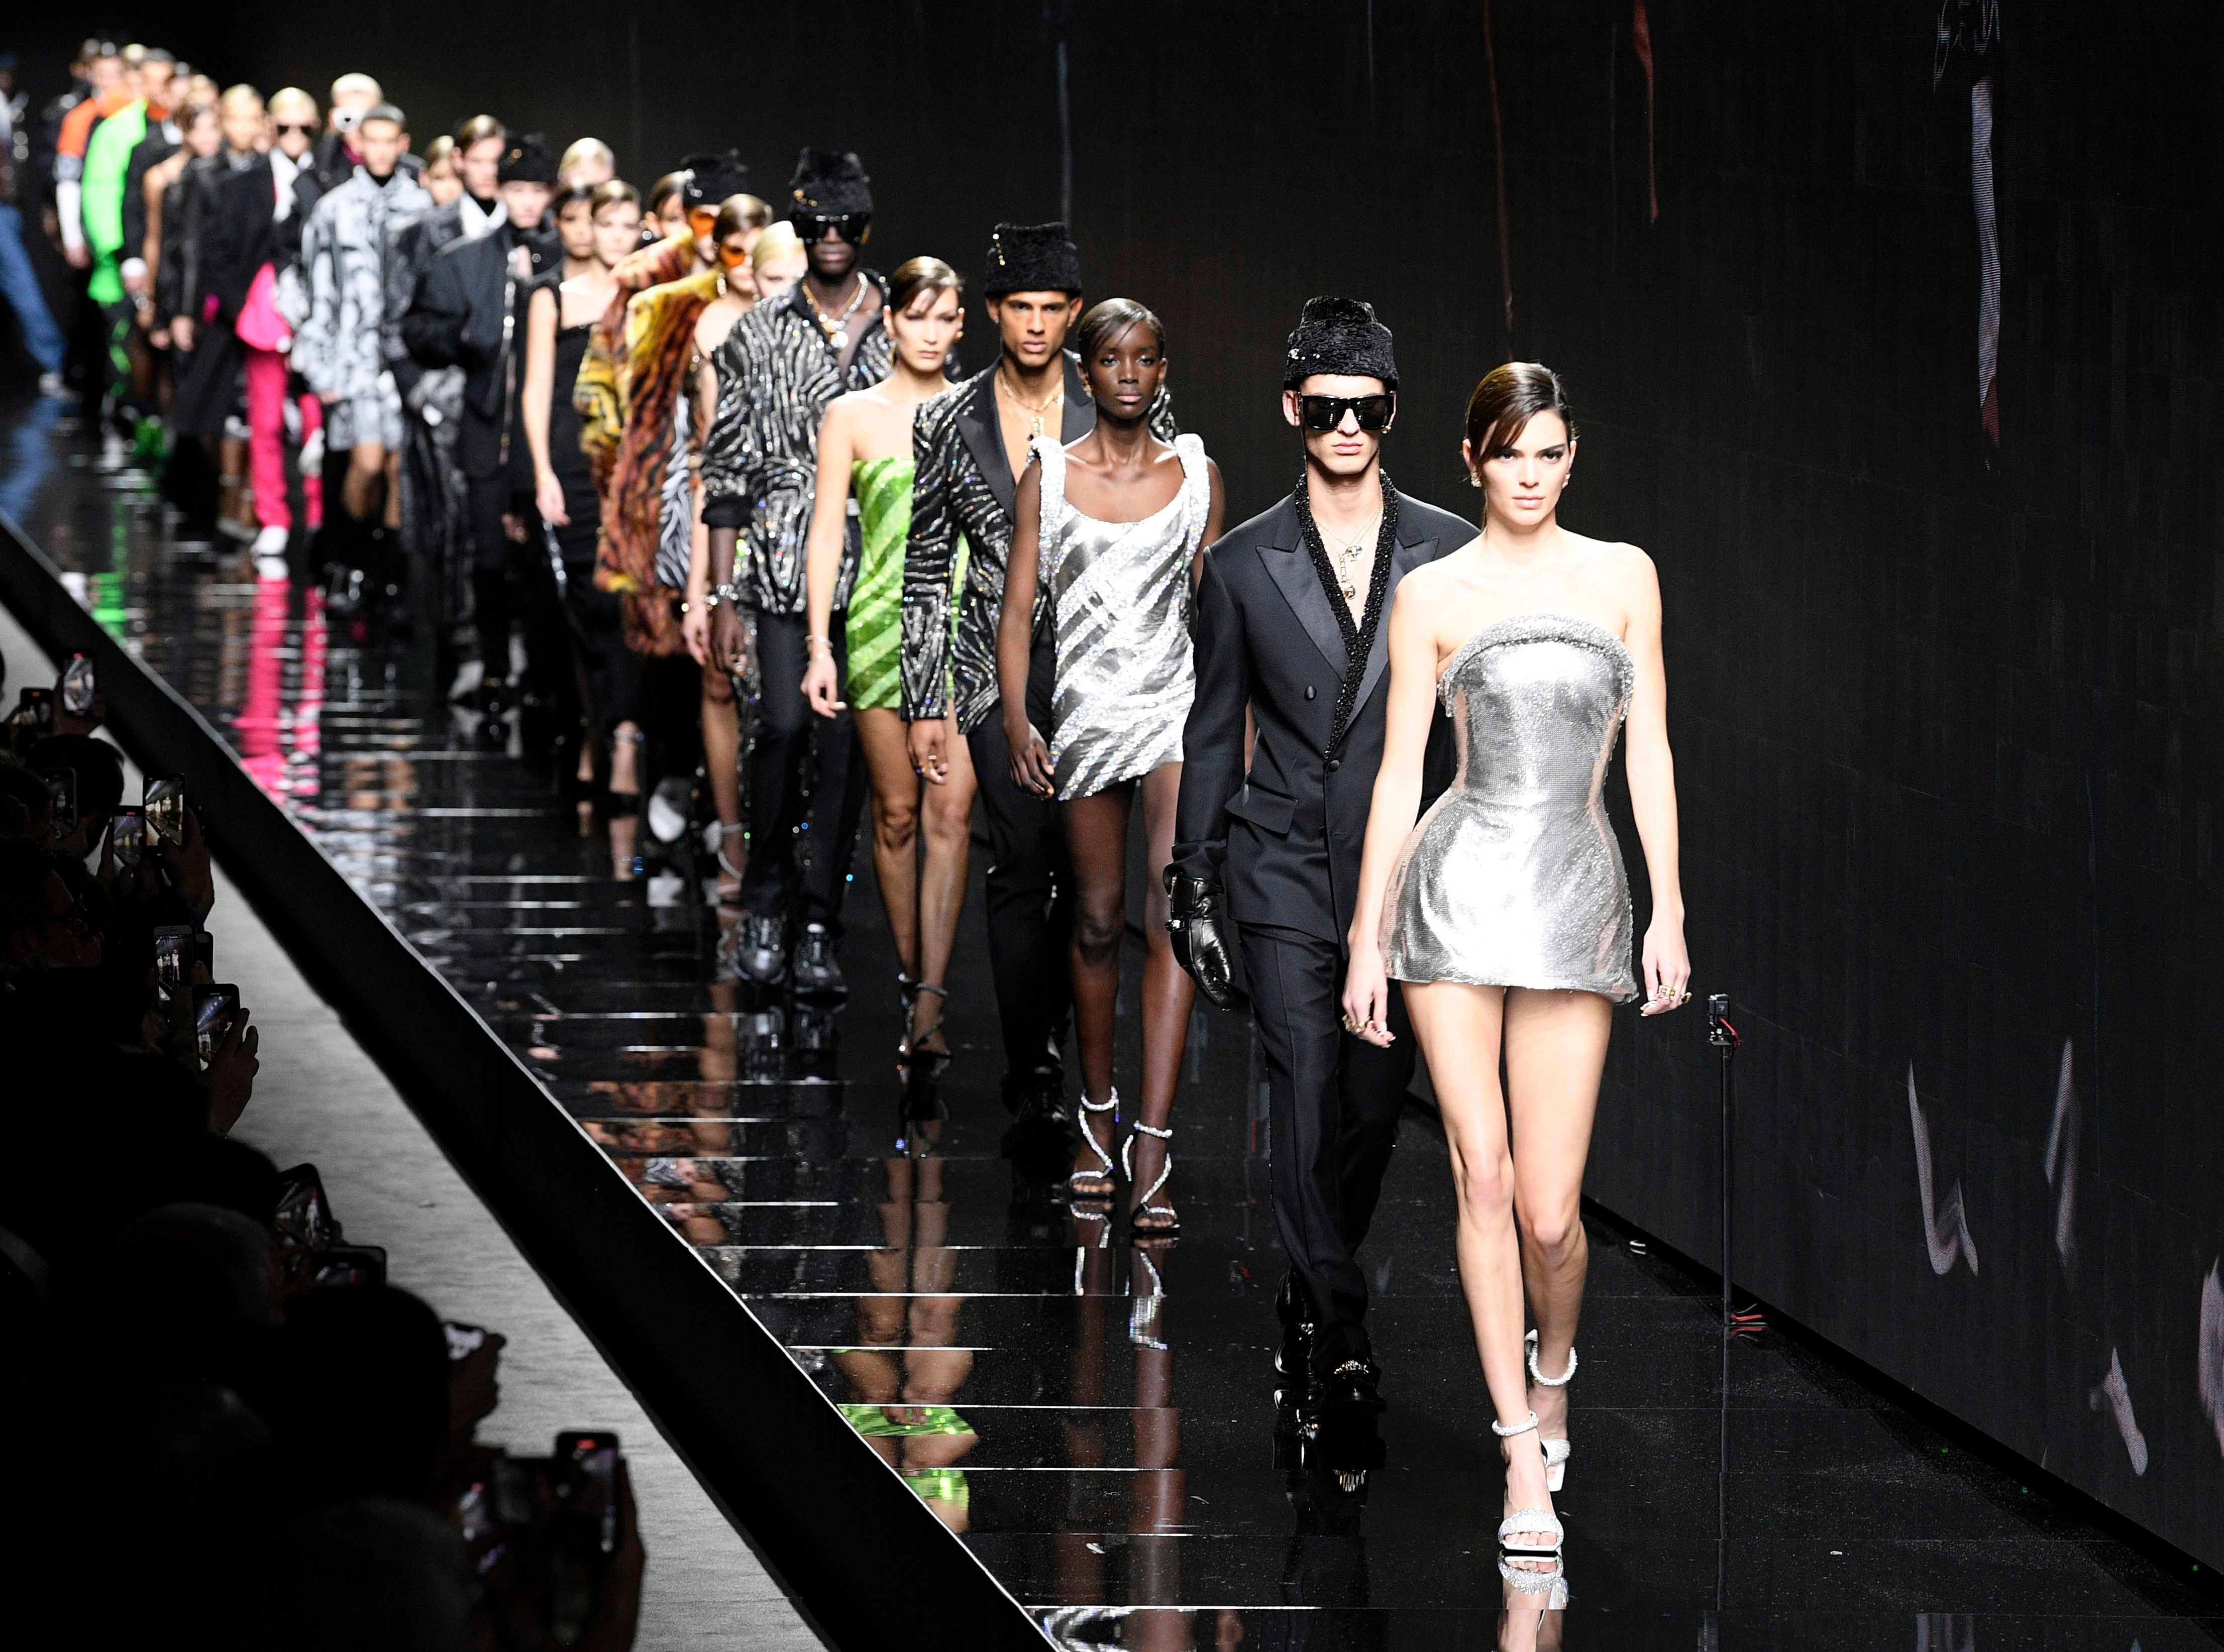 Kendall Jenner and models on the catwalkVersace show, Runway, Fall Winter 2020, Milan Fashion Week, Italy - 21 Feb 2020